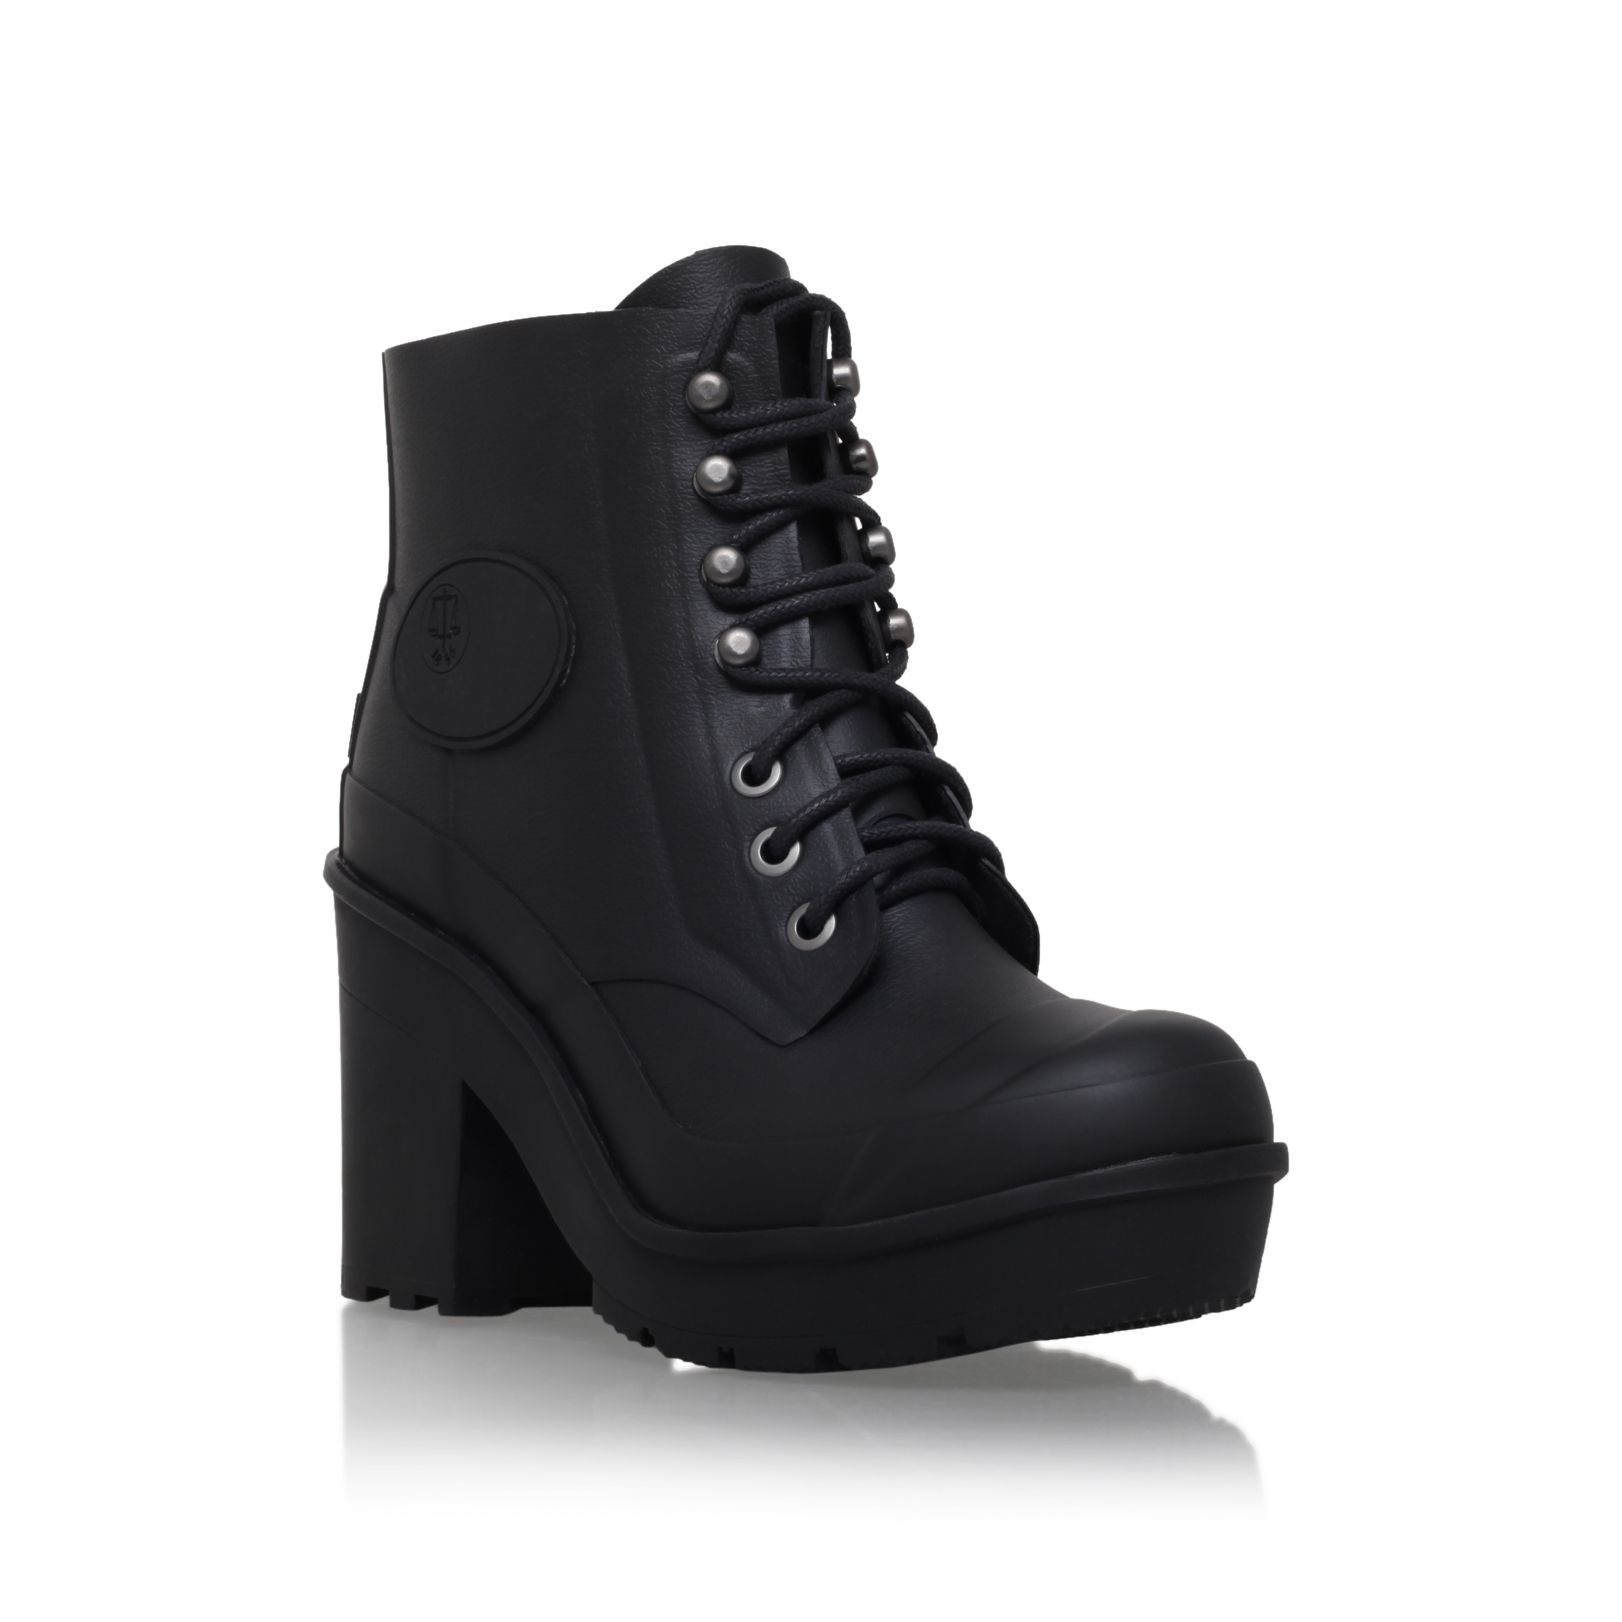 Hunter Original Bullseye Lace Up Ankle Boots in Black | Lyst